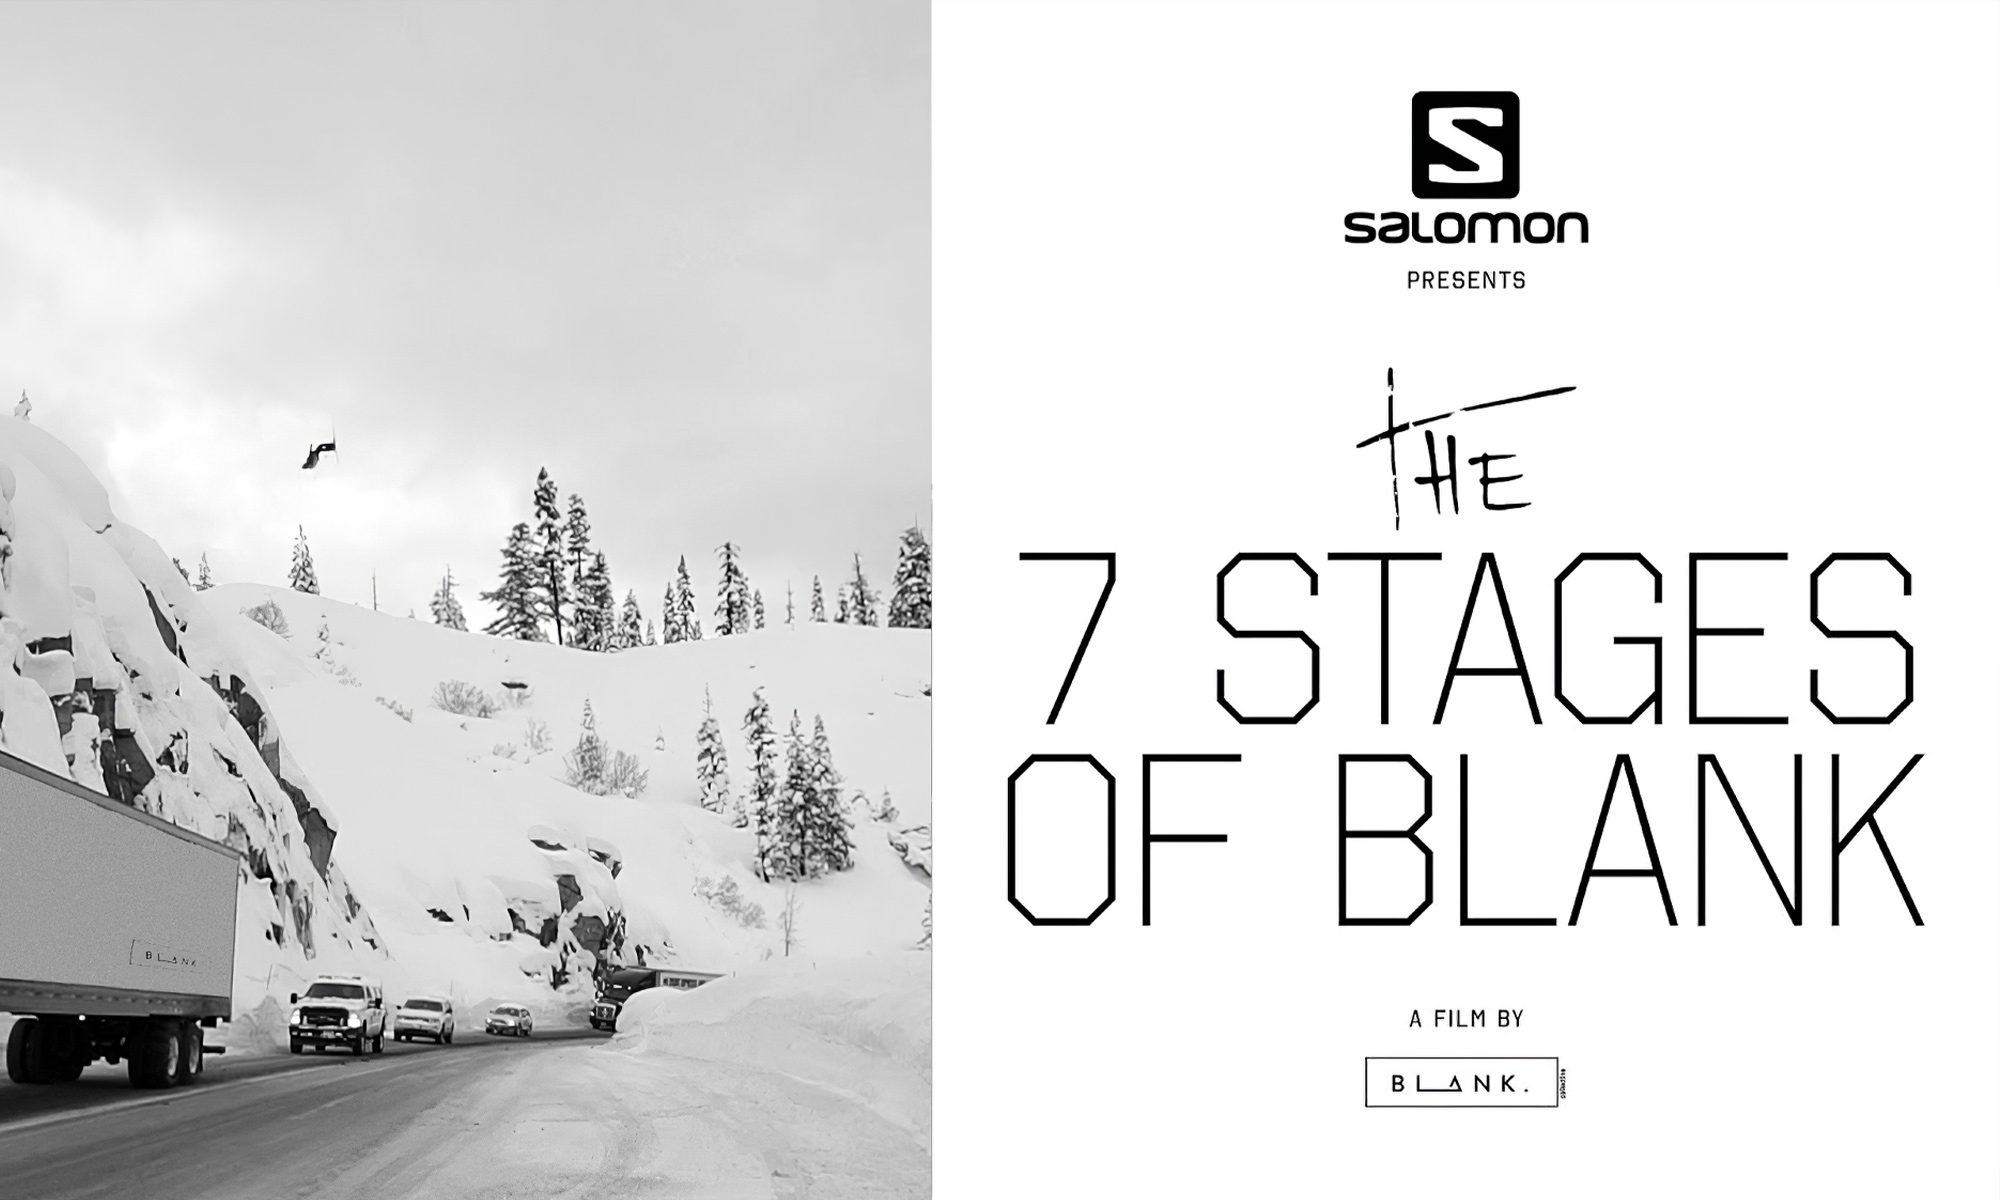 The 7 stages of blank